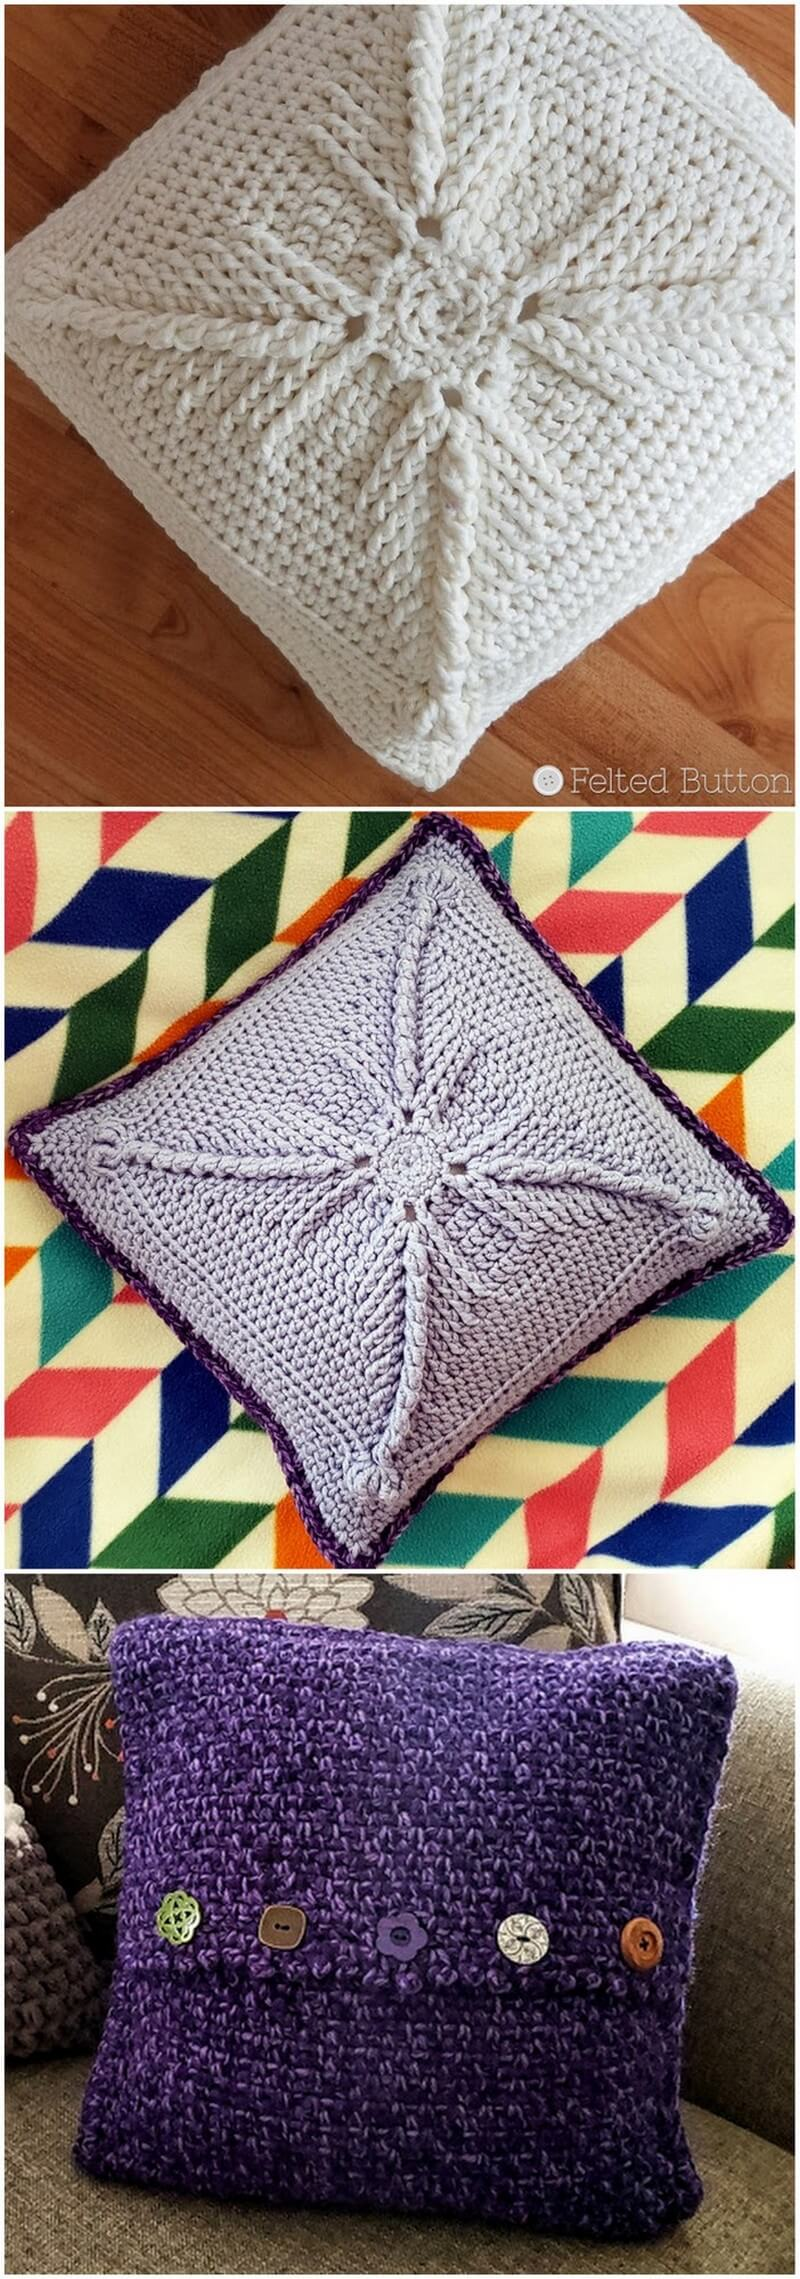 Crochet Pillow Pattern (5)